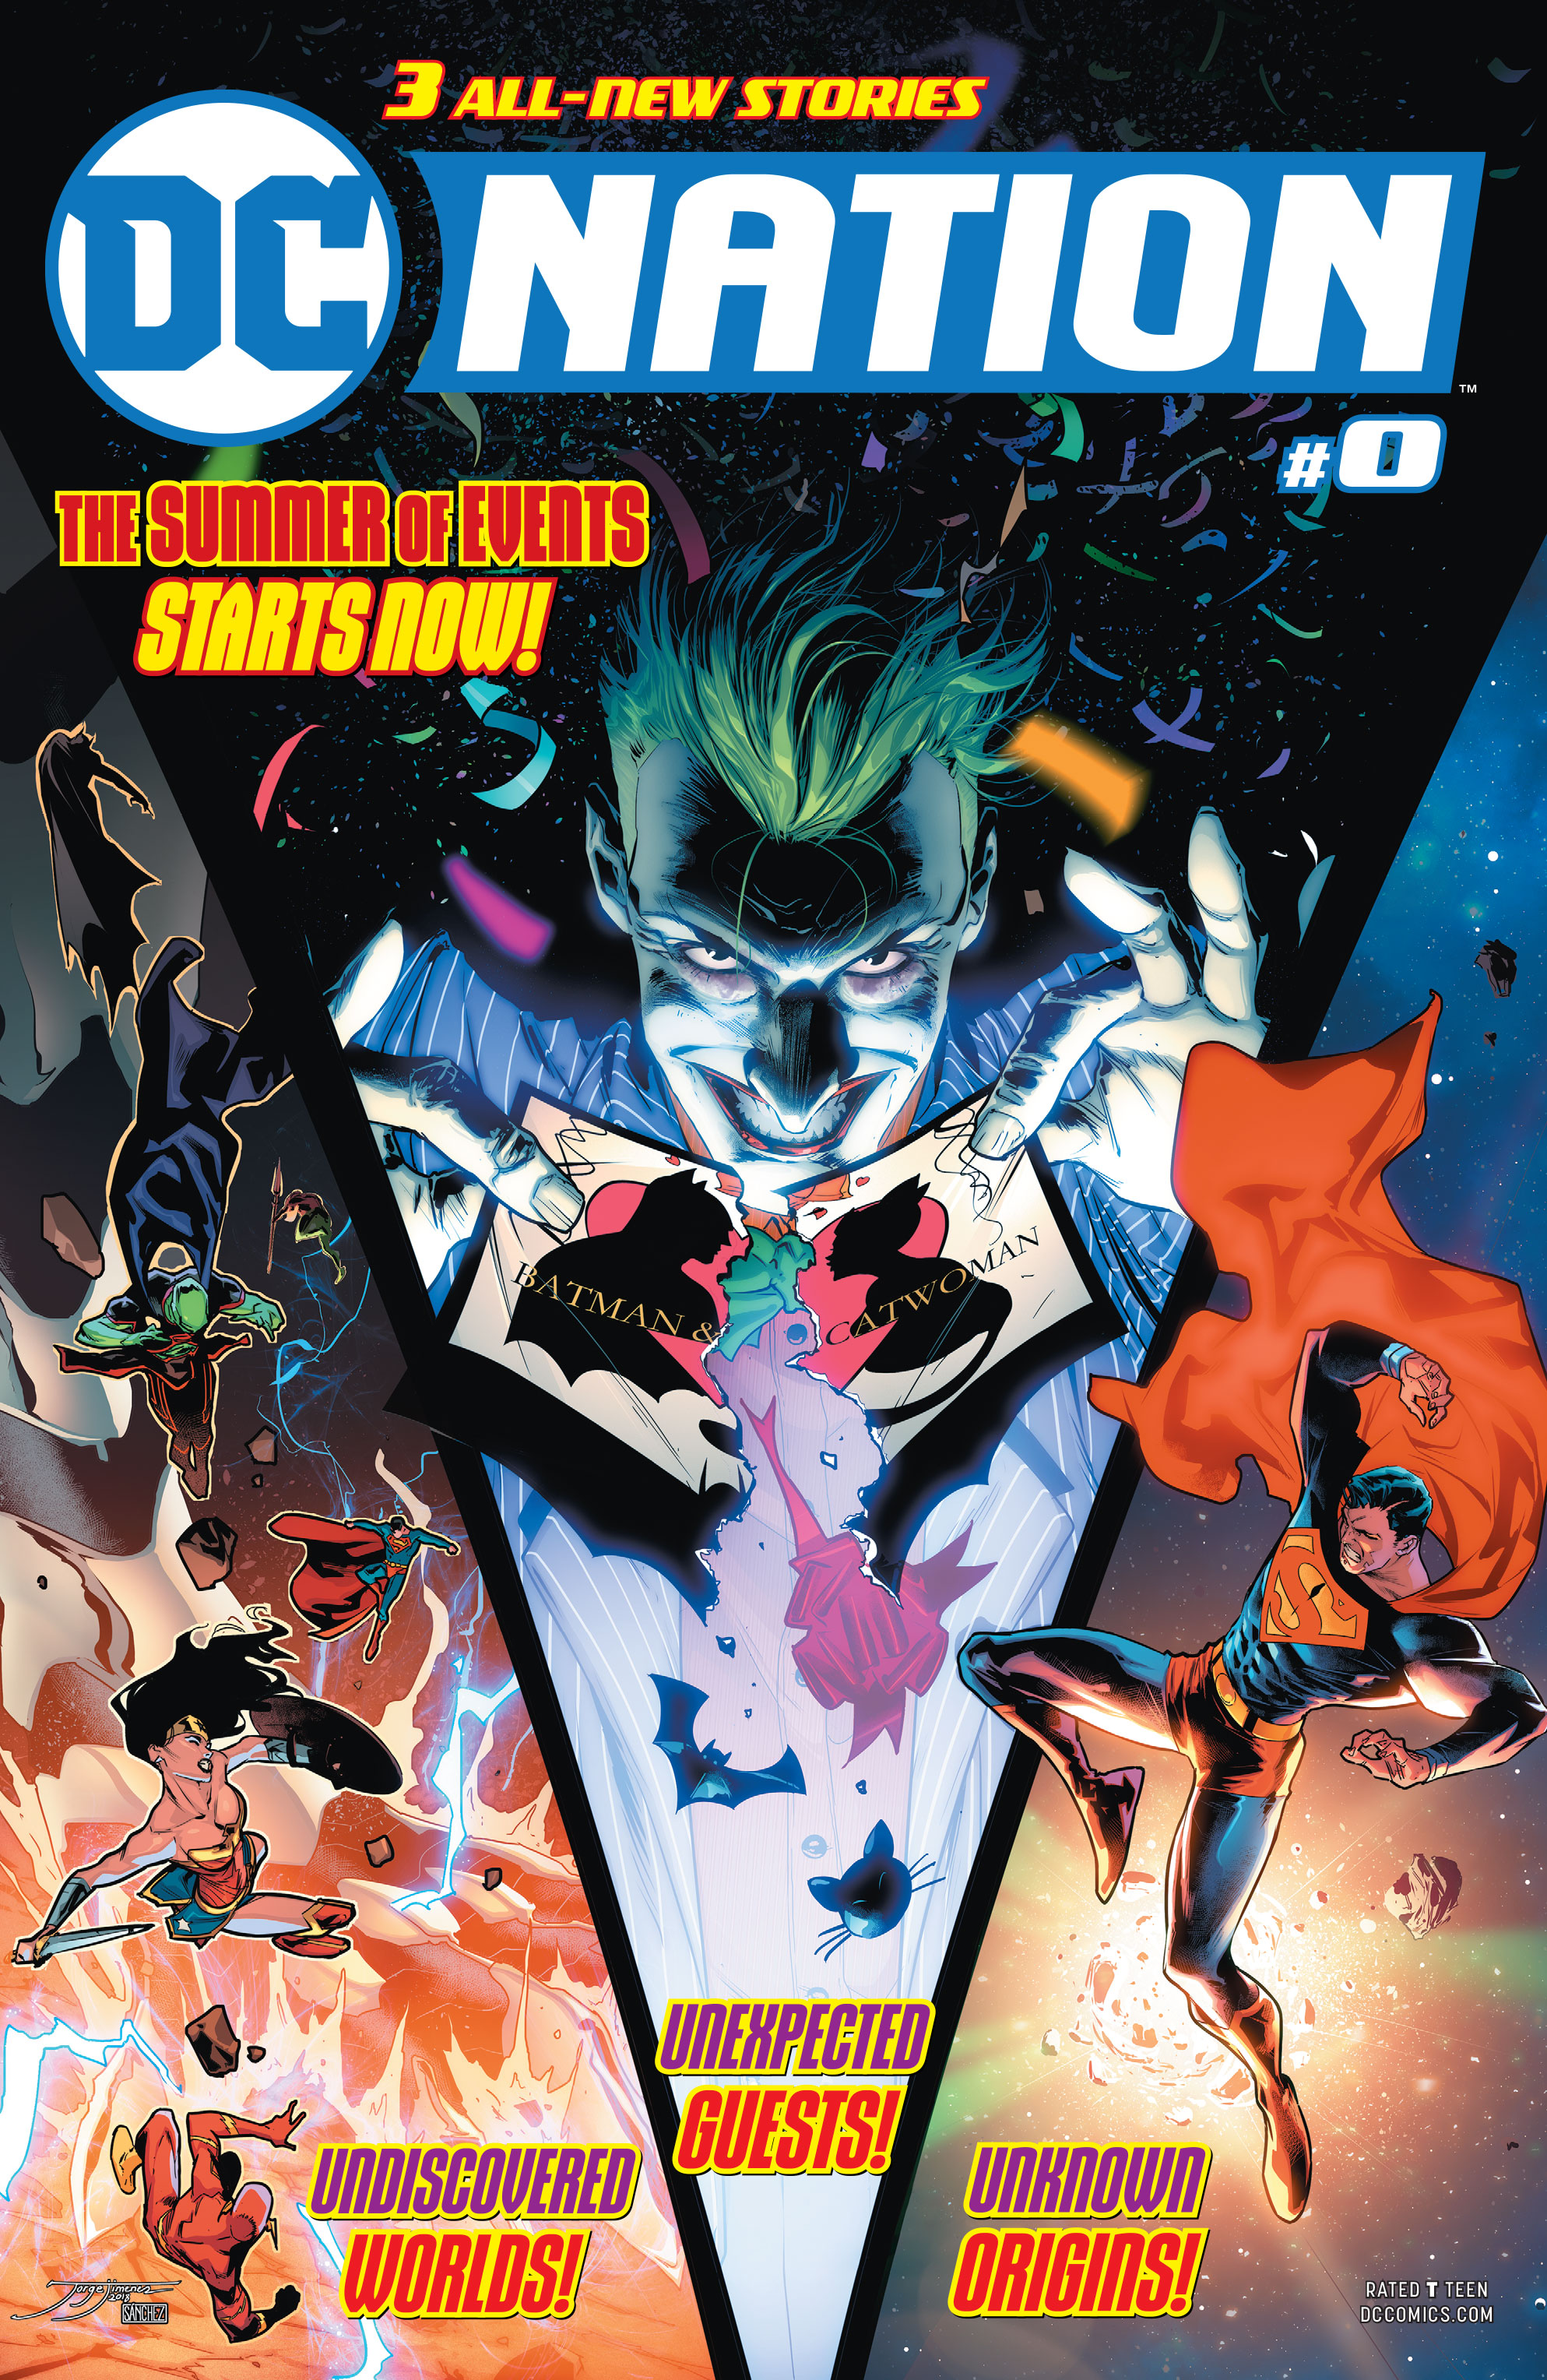 REVIEW: DC Nation #0